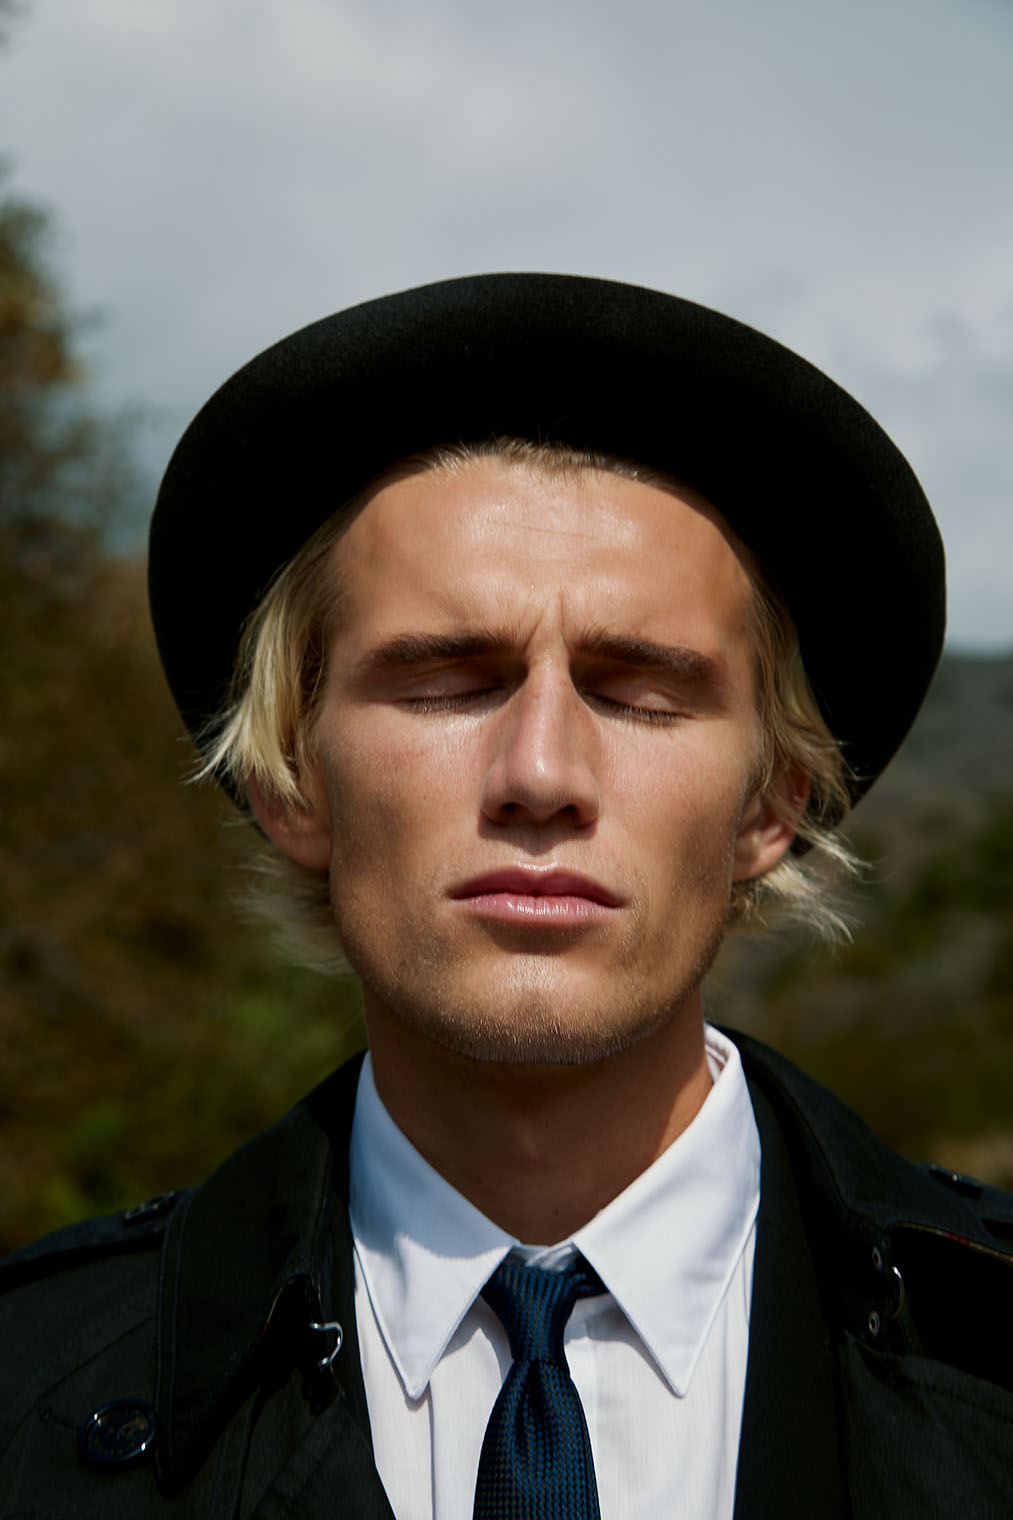 The deep emotion makes his face look ethereal - fashion portrait photographed in Malibu, California